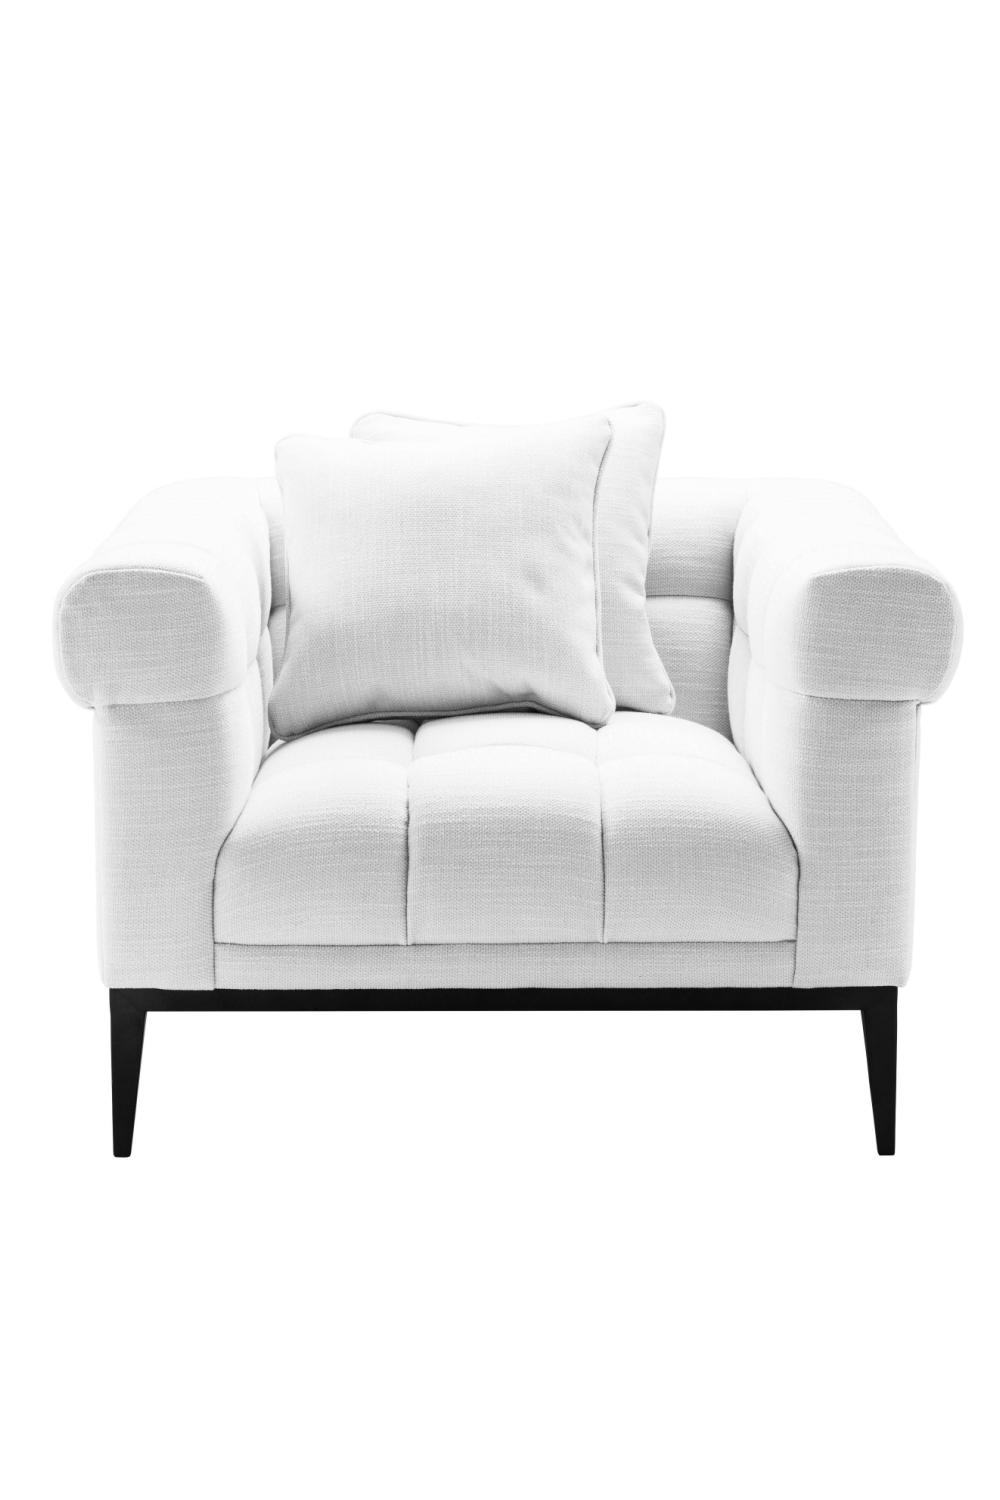 Tufted White Accent Chair | Eichholtz Aurelio